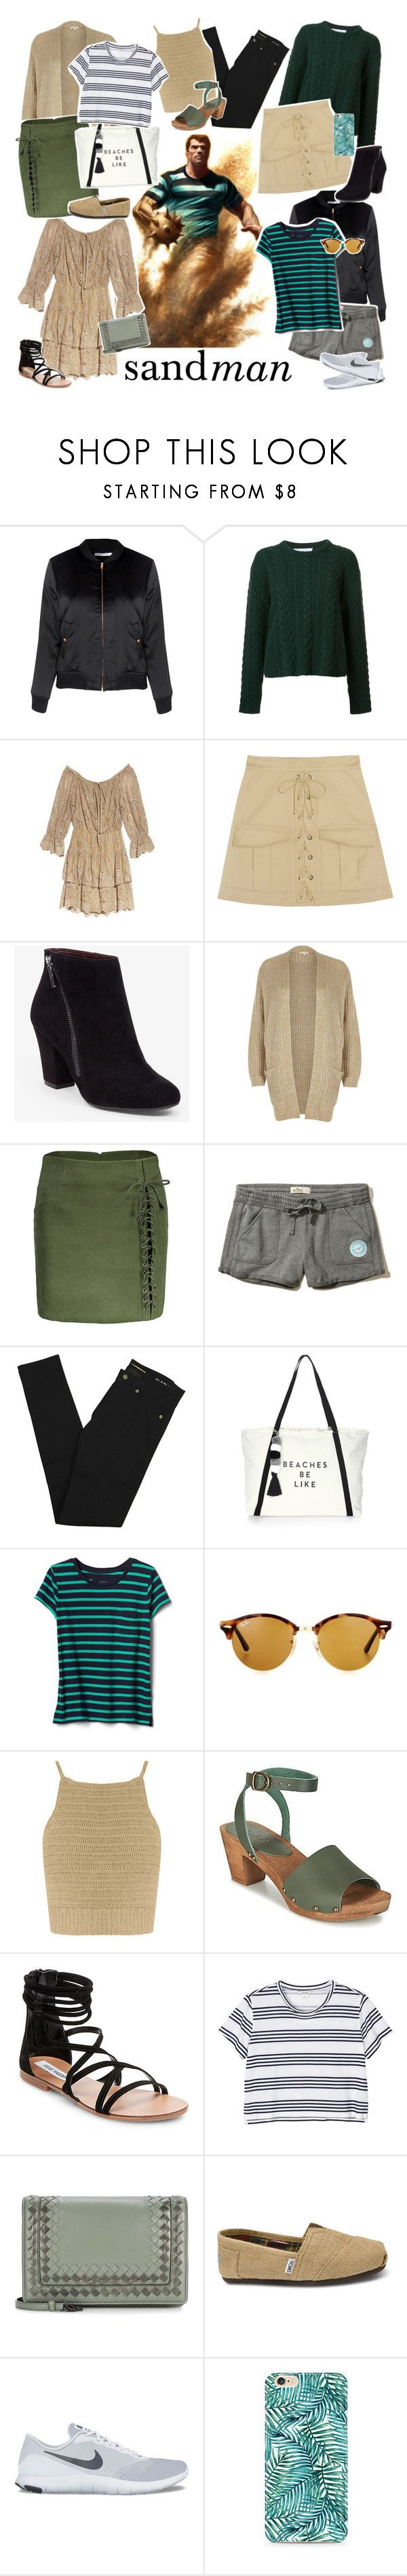 """spiderman series 